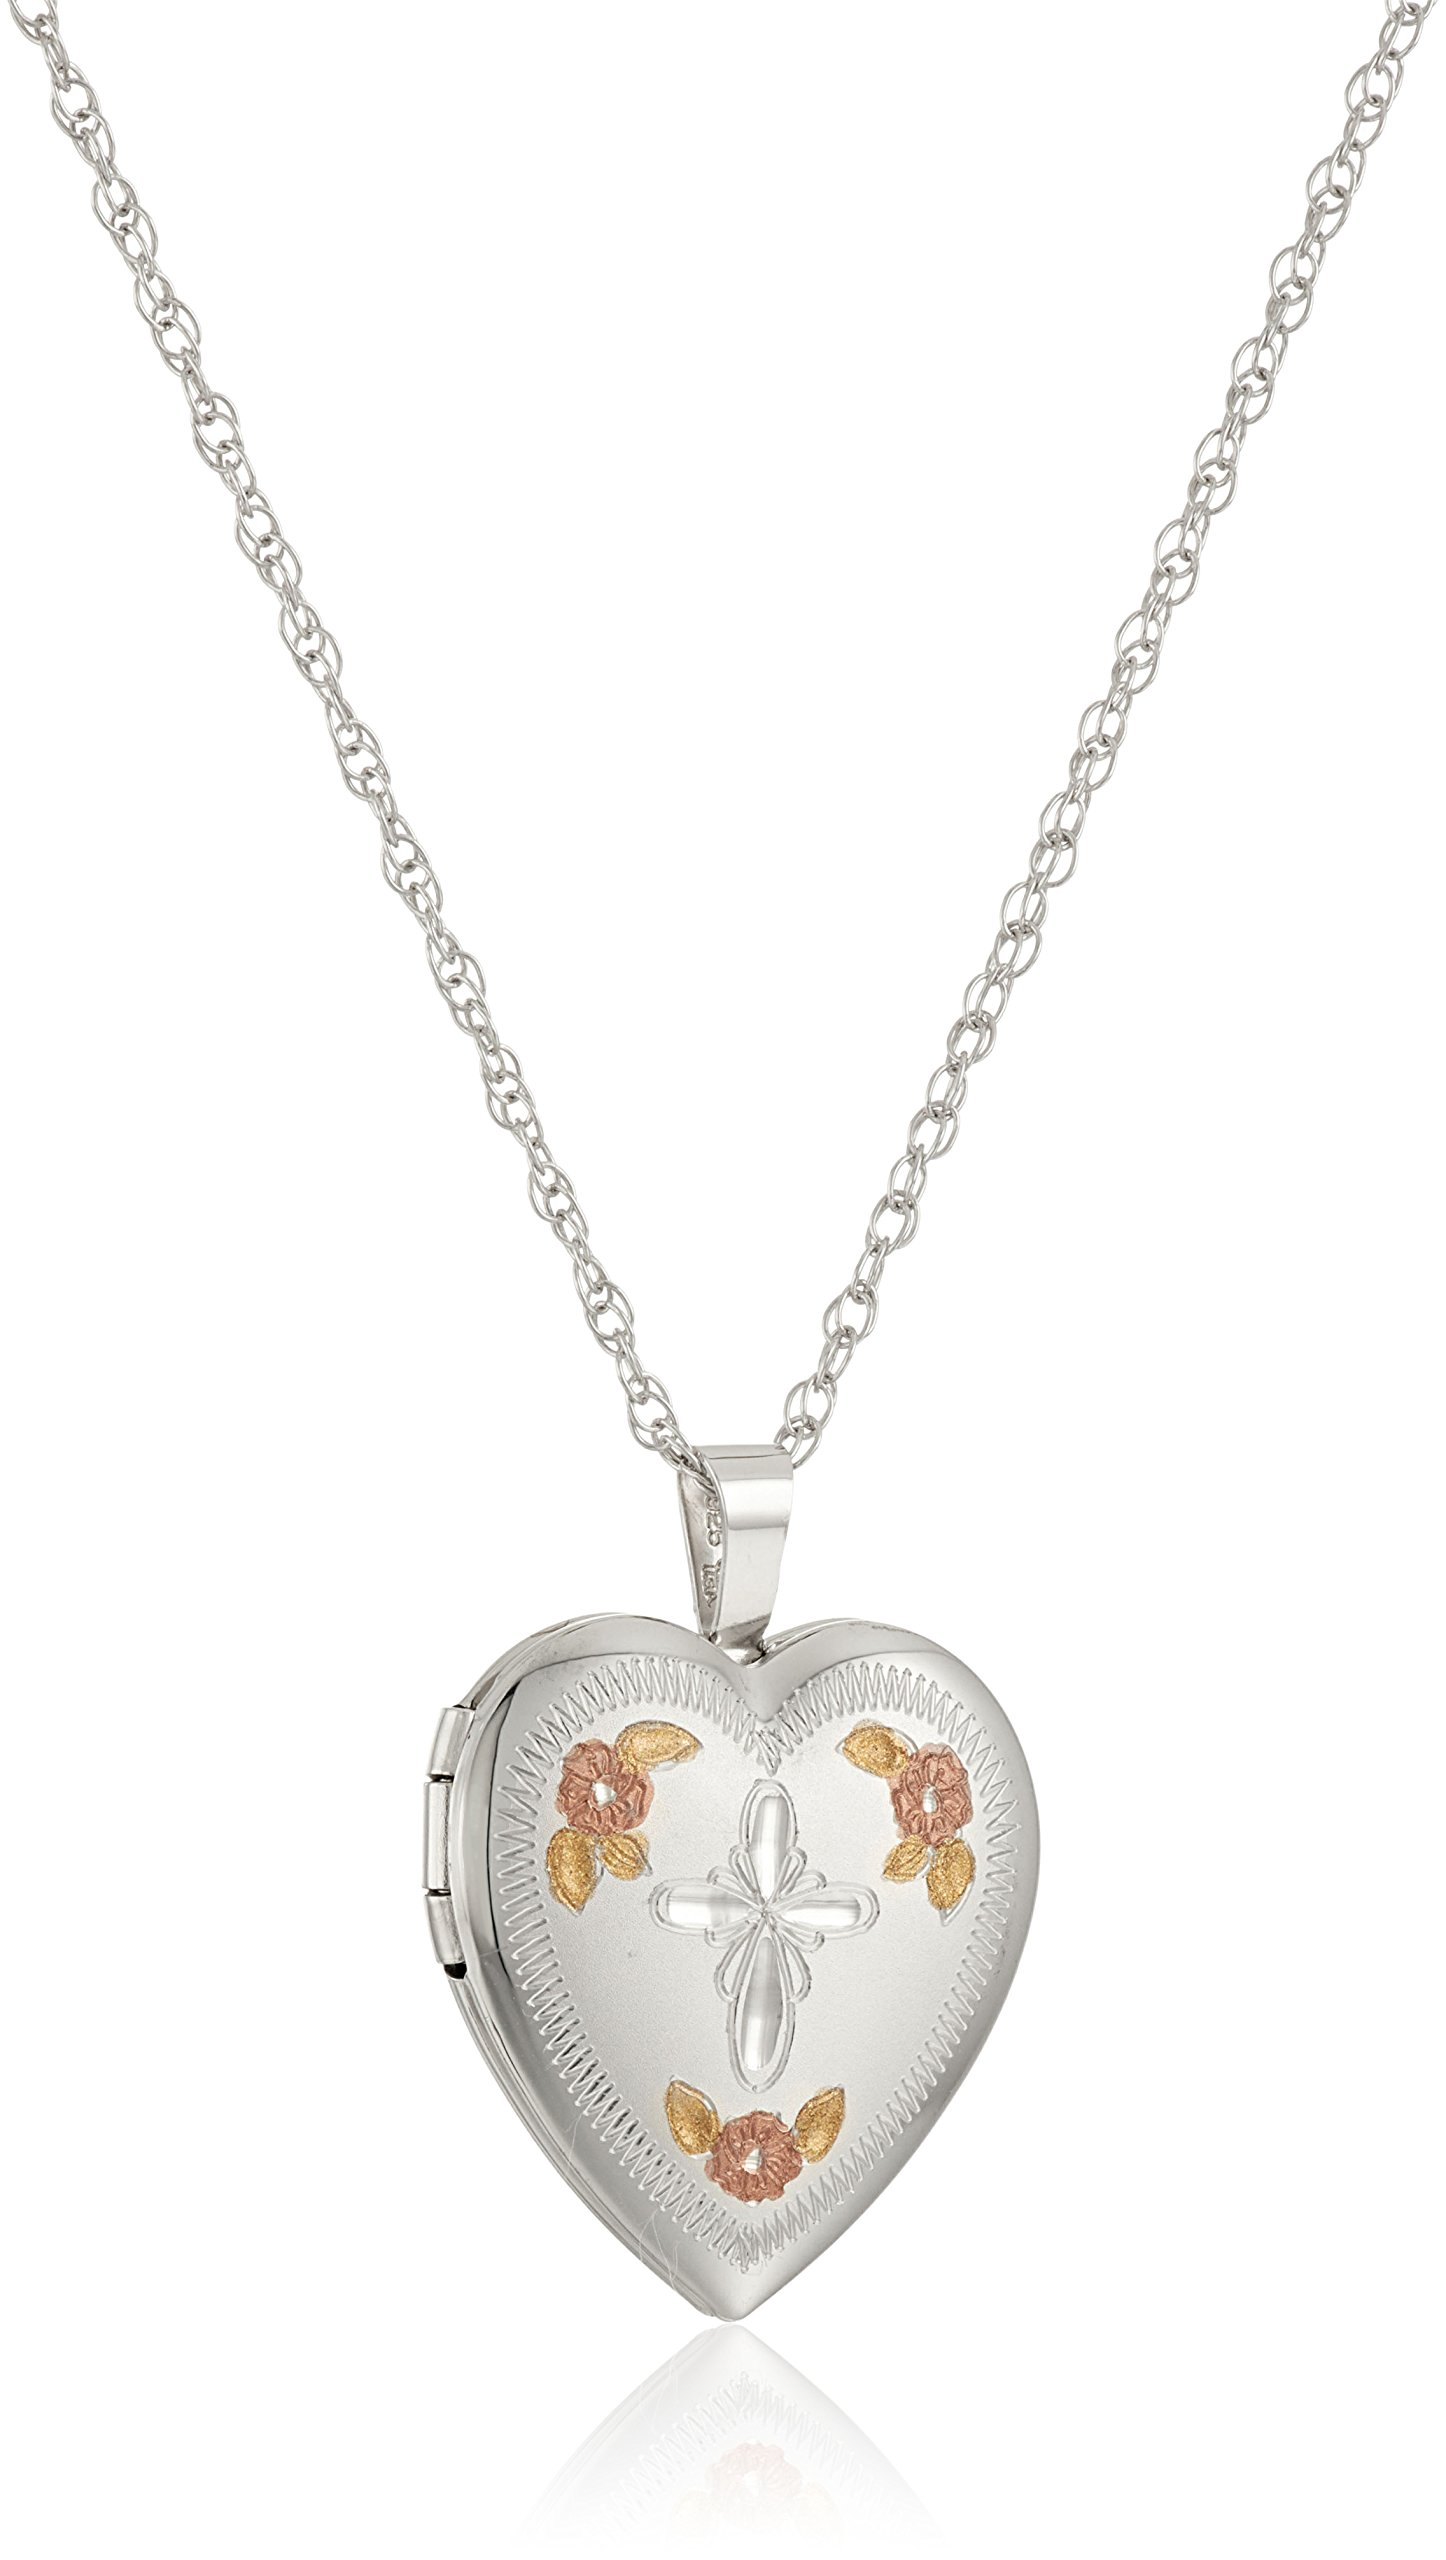 Sterling Silver Hand Engraved Cross Heart with Tri-Color Locket Necklace, 18''